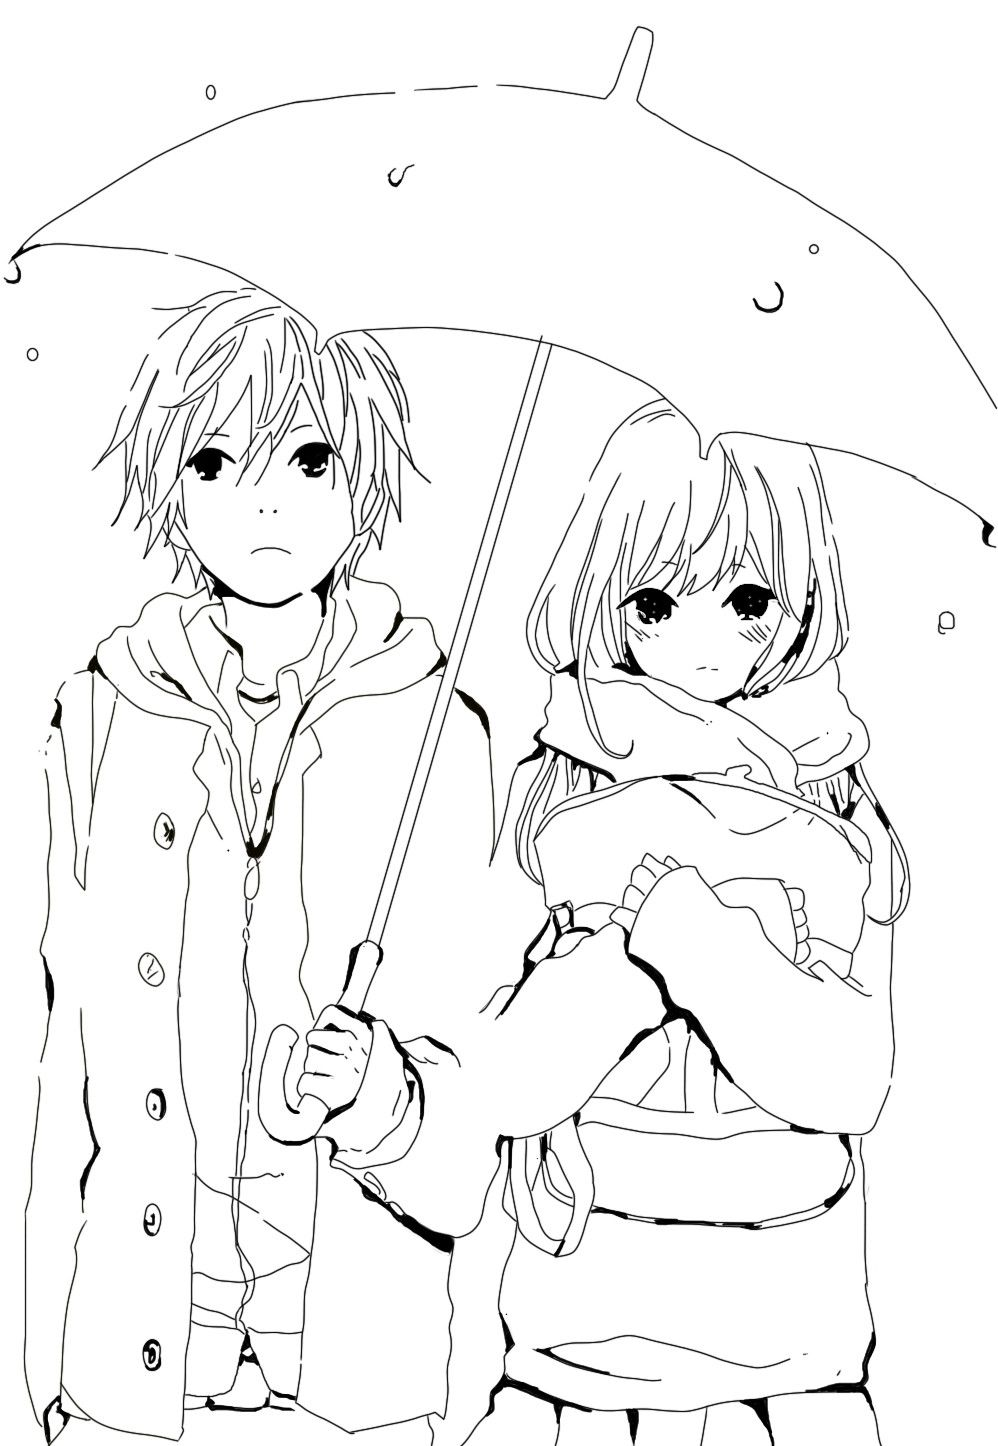 Anime Coloring Pages Best Coloring Pages For Manga Coloring Book Cartoon Coloring Pages Cute Coloring Pages